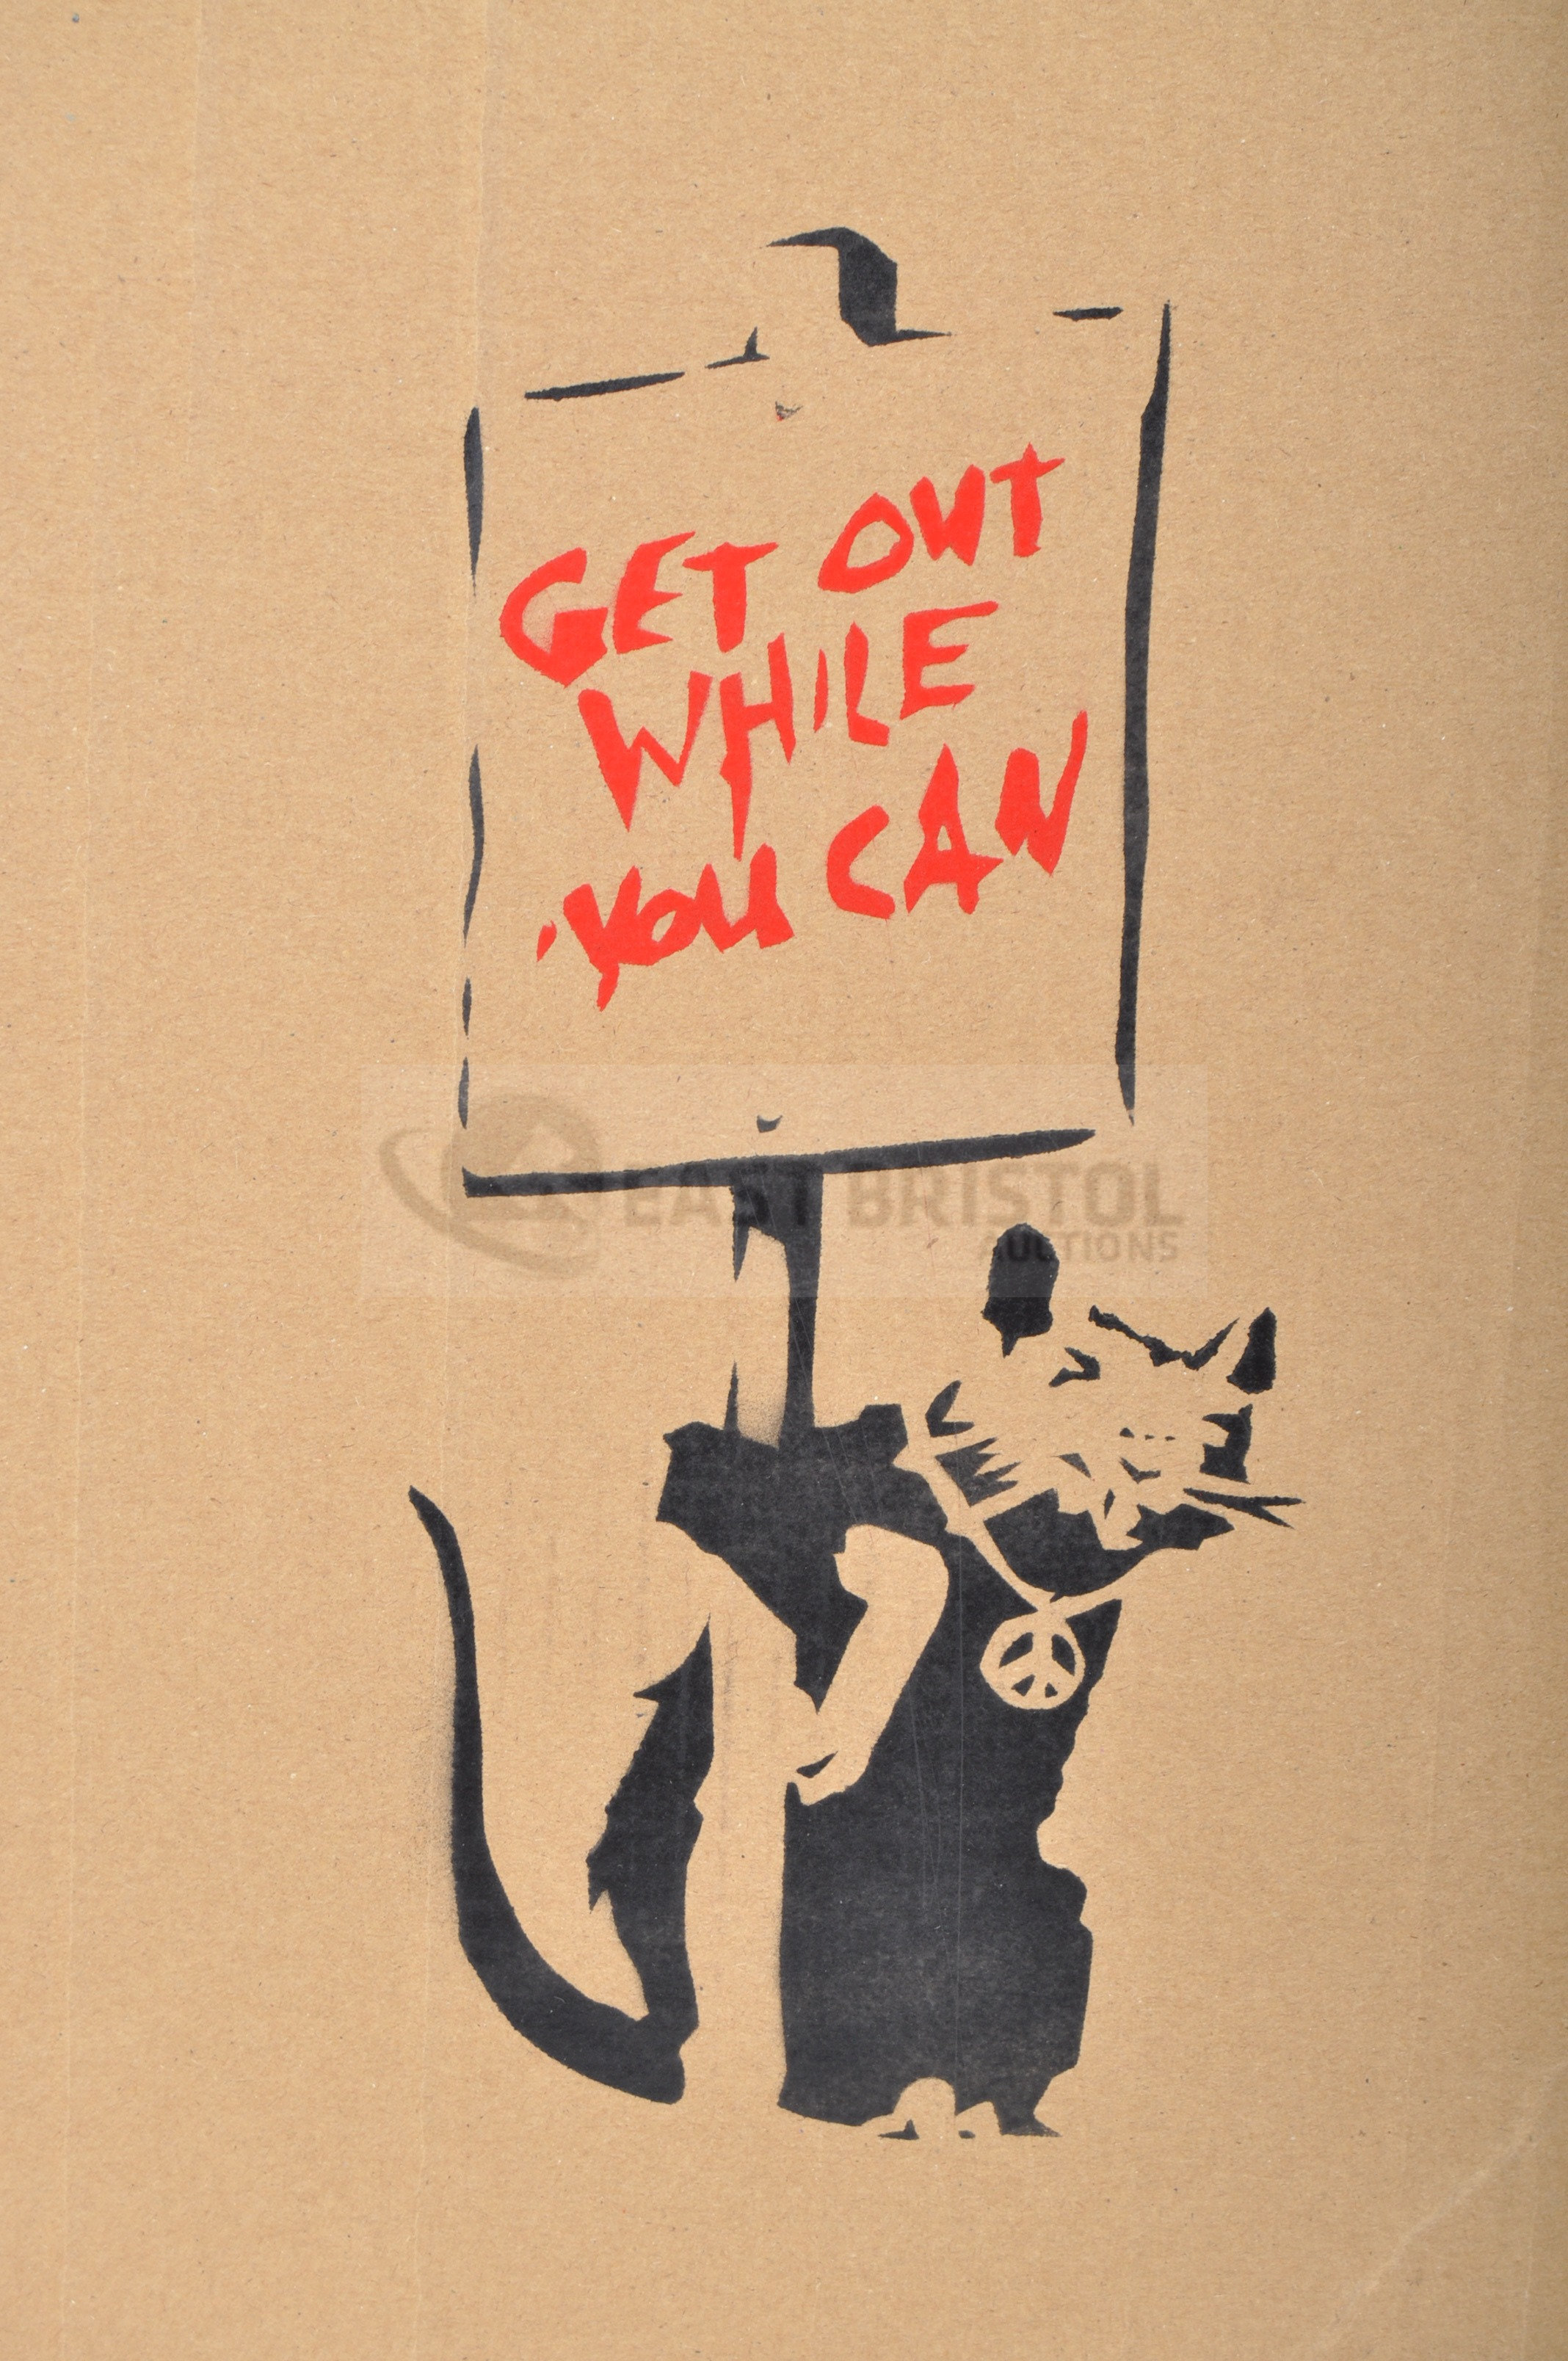 BANKSY - DISMALAND 2015 - GET OUT WHILE YOU CAN - Image 2 of 4